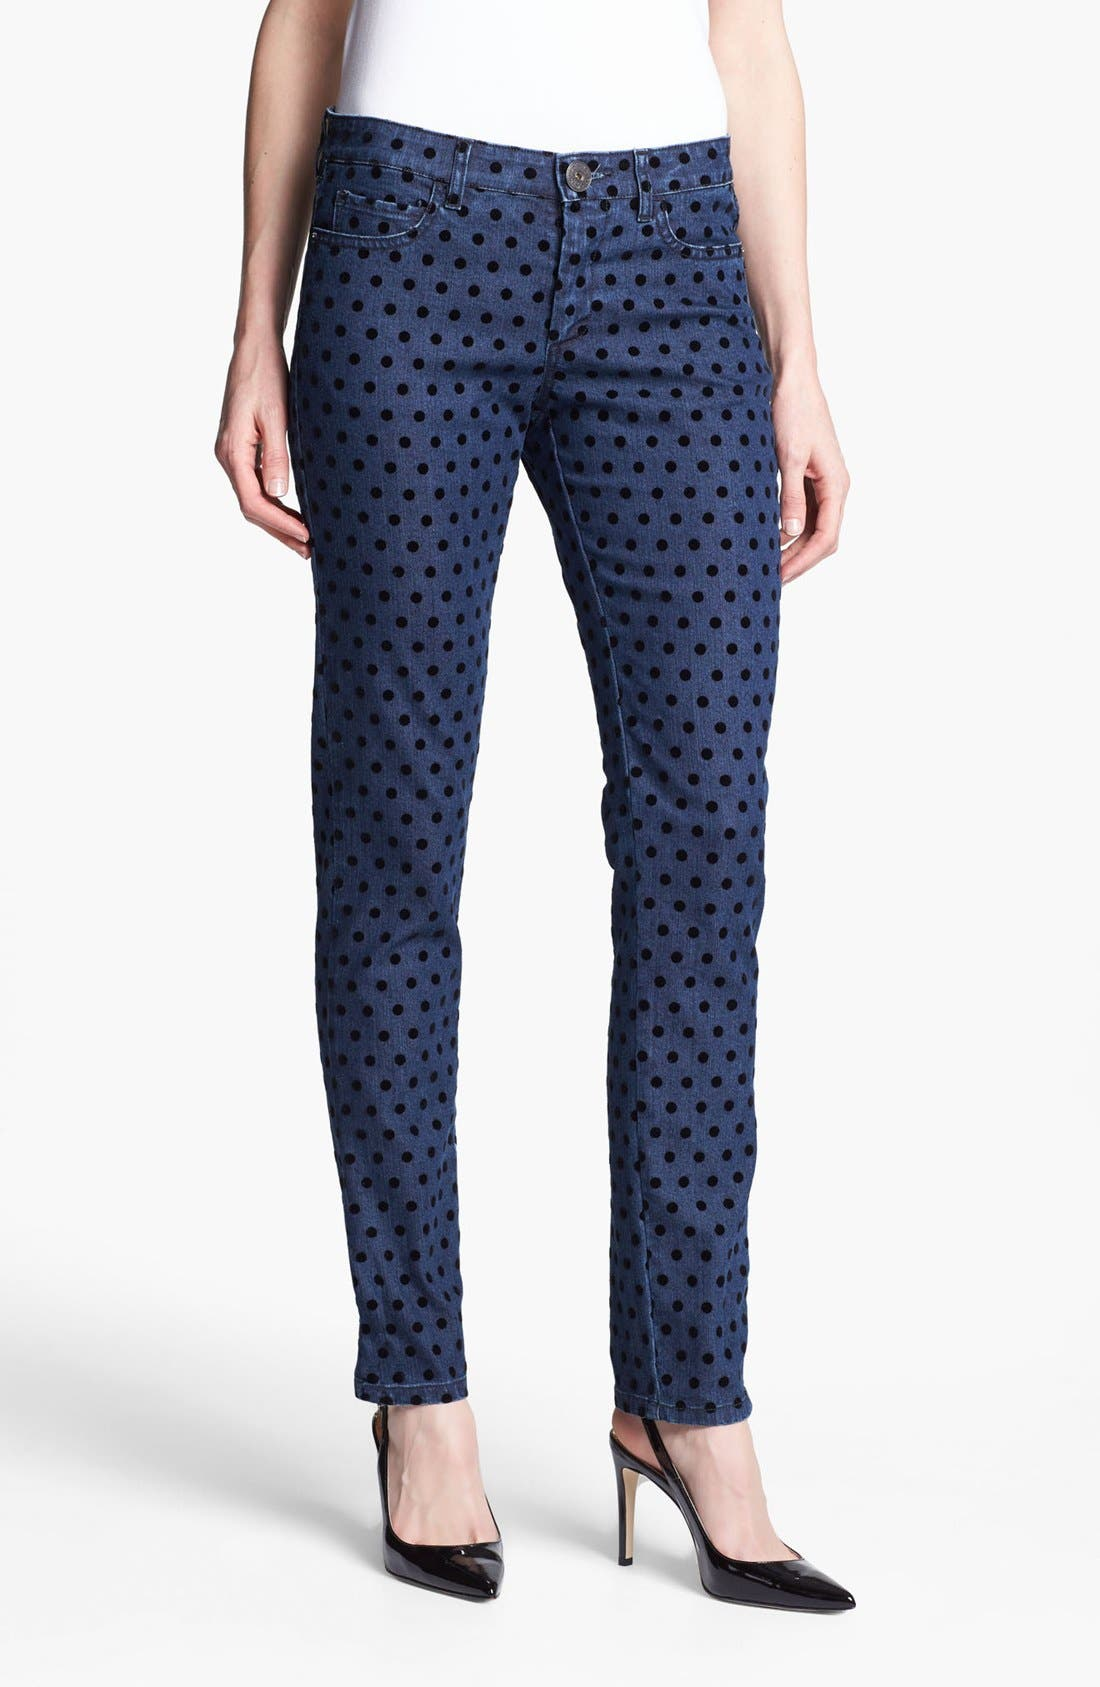 Alternate Image 1 Selected - Weekend Max Mara 'Cirella' Flocked Dot Jeans